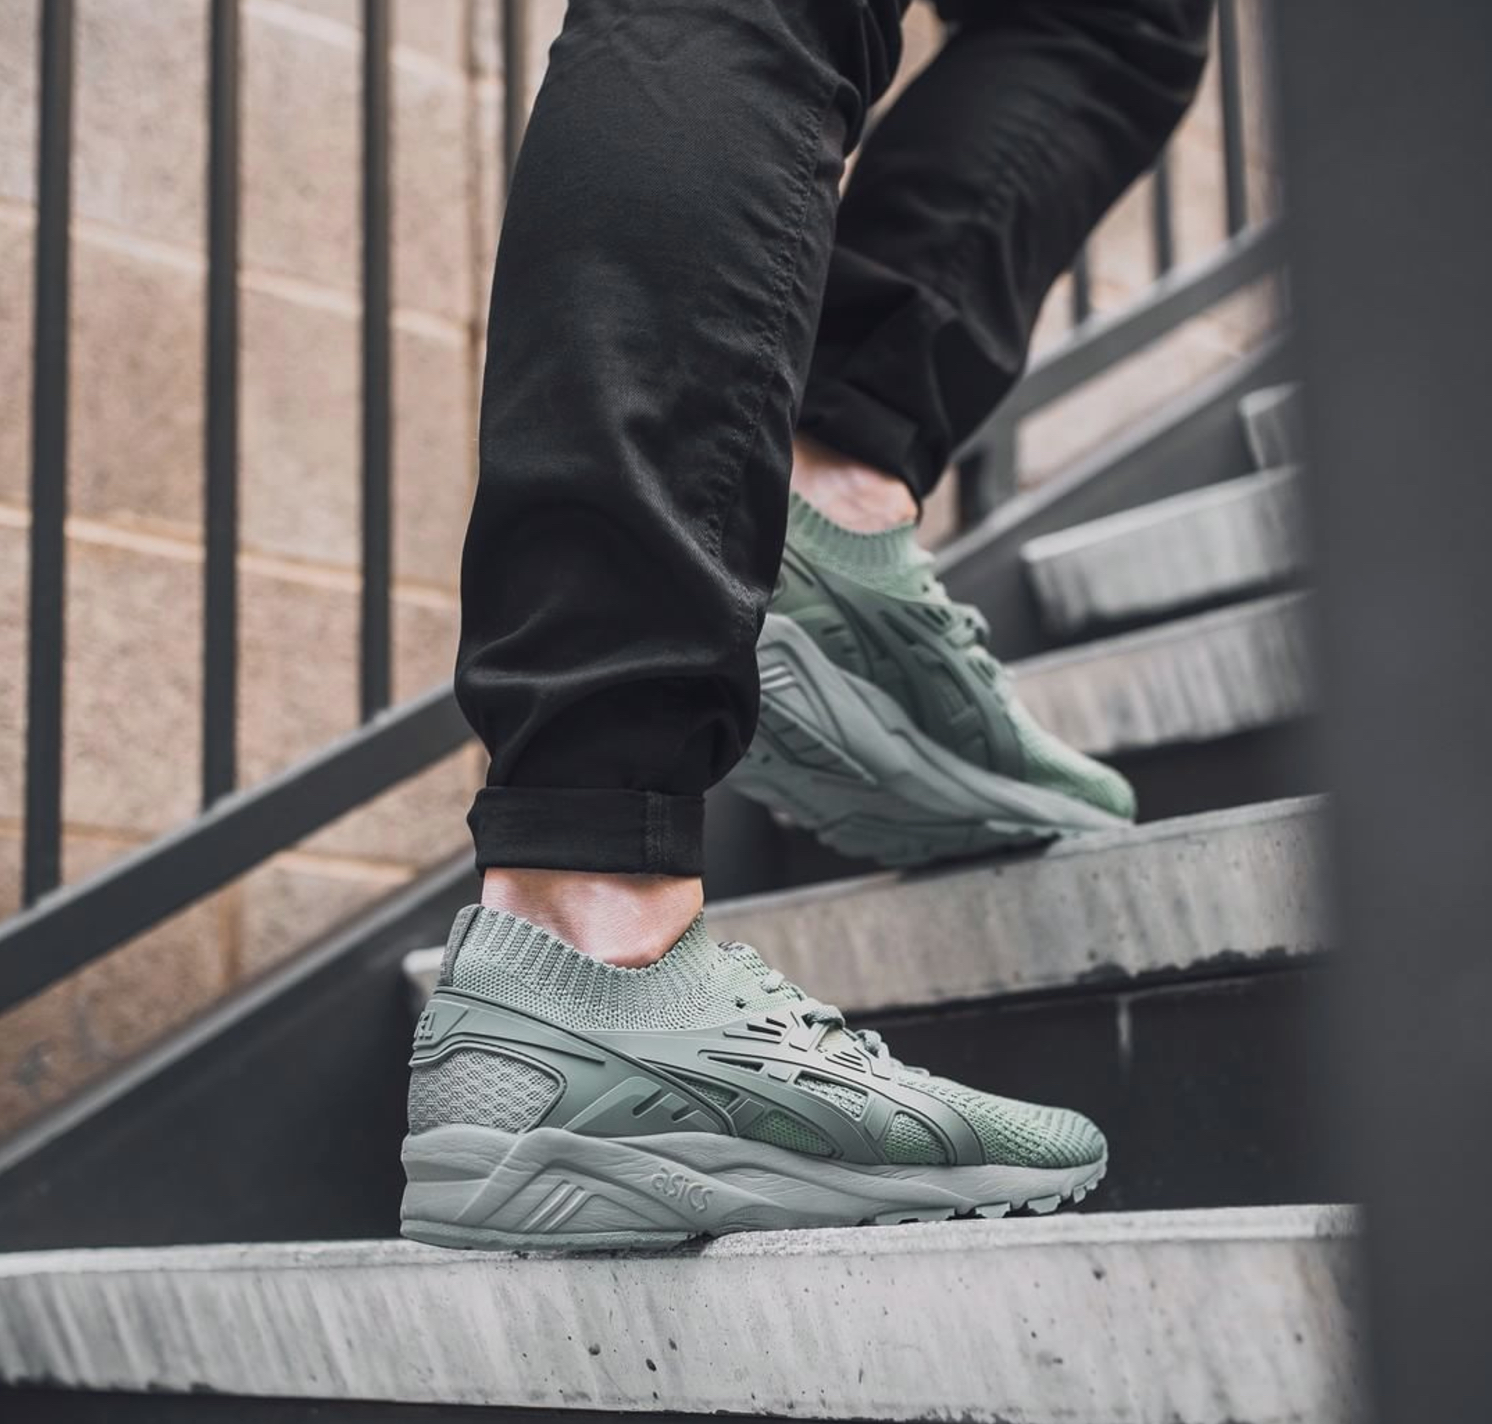 asics gel kayano trainer knit low 3 WearTesters